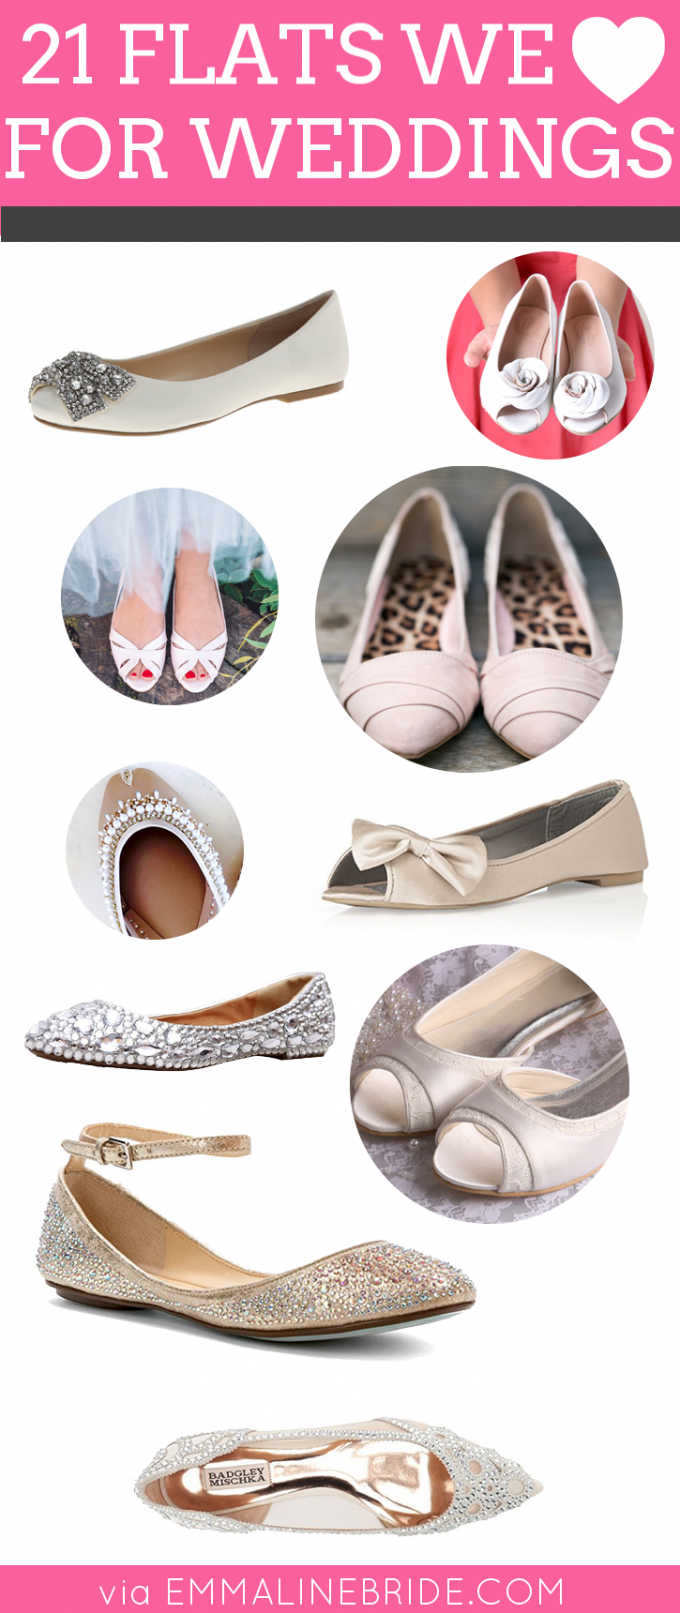 wedding-flats-for-the-bride